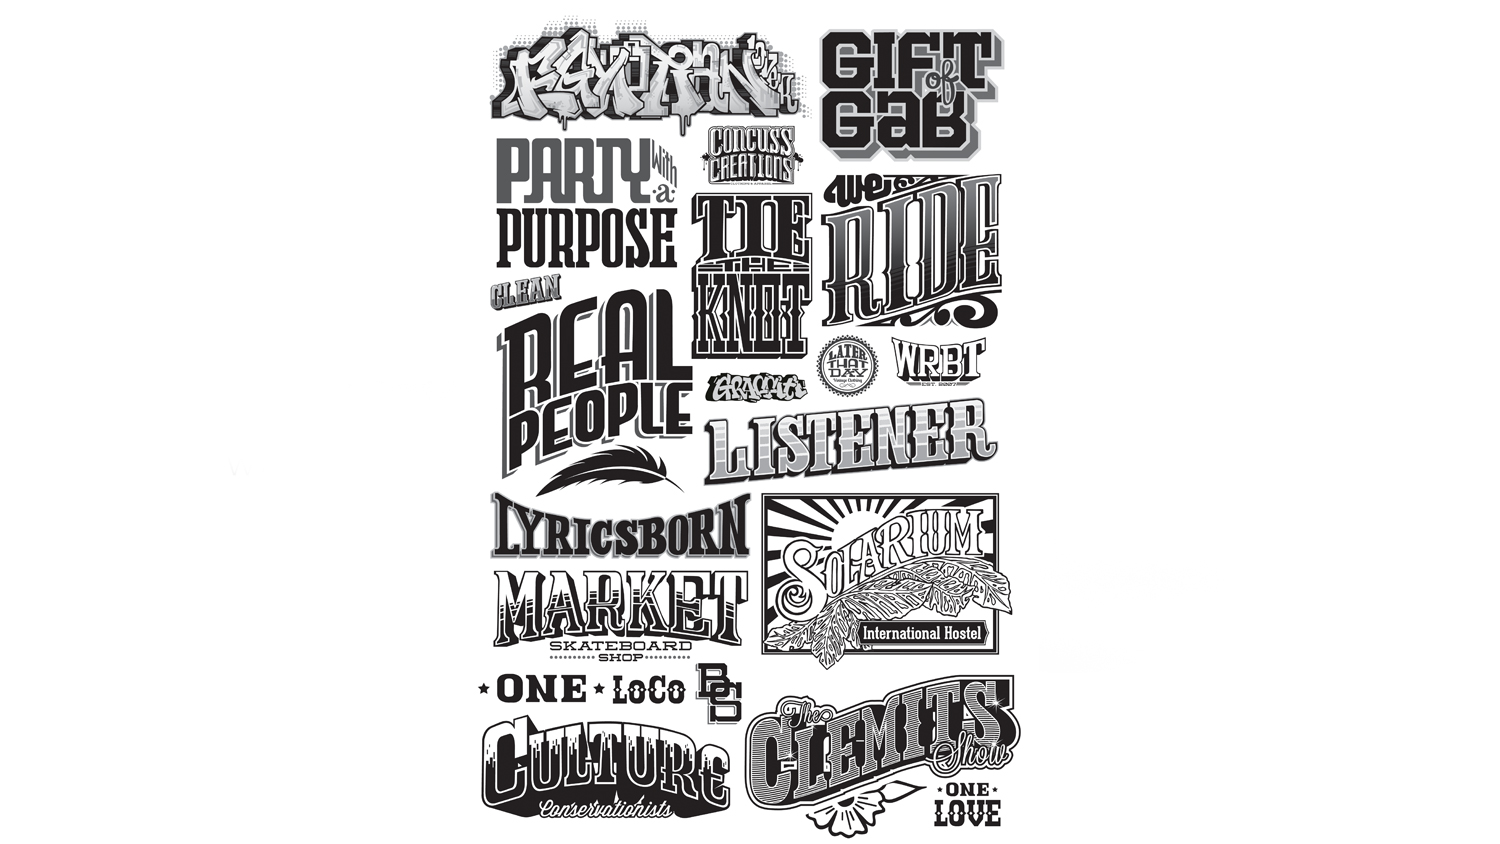 These are various samples of different custom, hand-drawn lettering we've created for a variety of clients. Custom lettering can give your project an unexpected vintage touch that would otherwise be hard to come by.